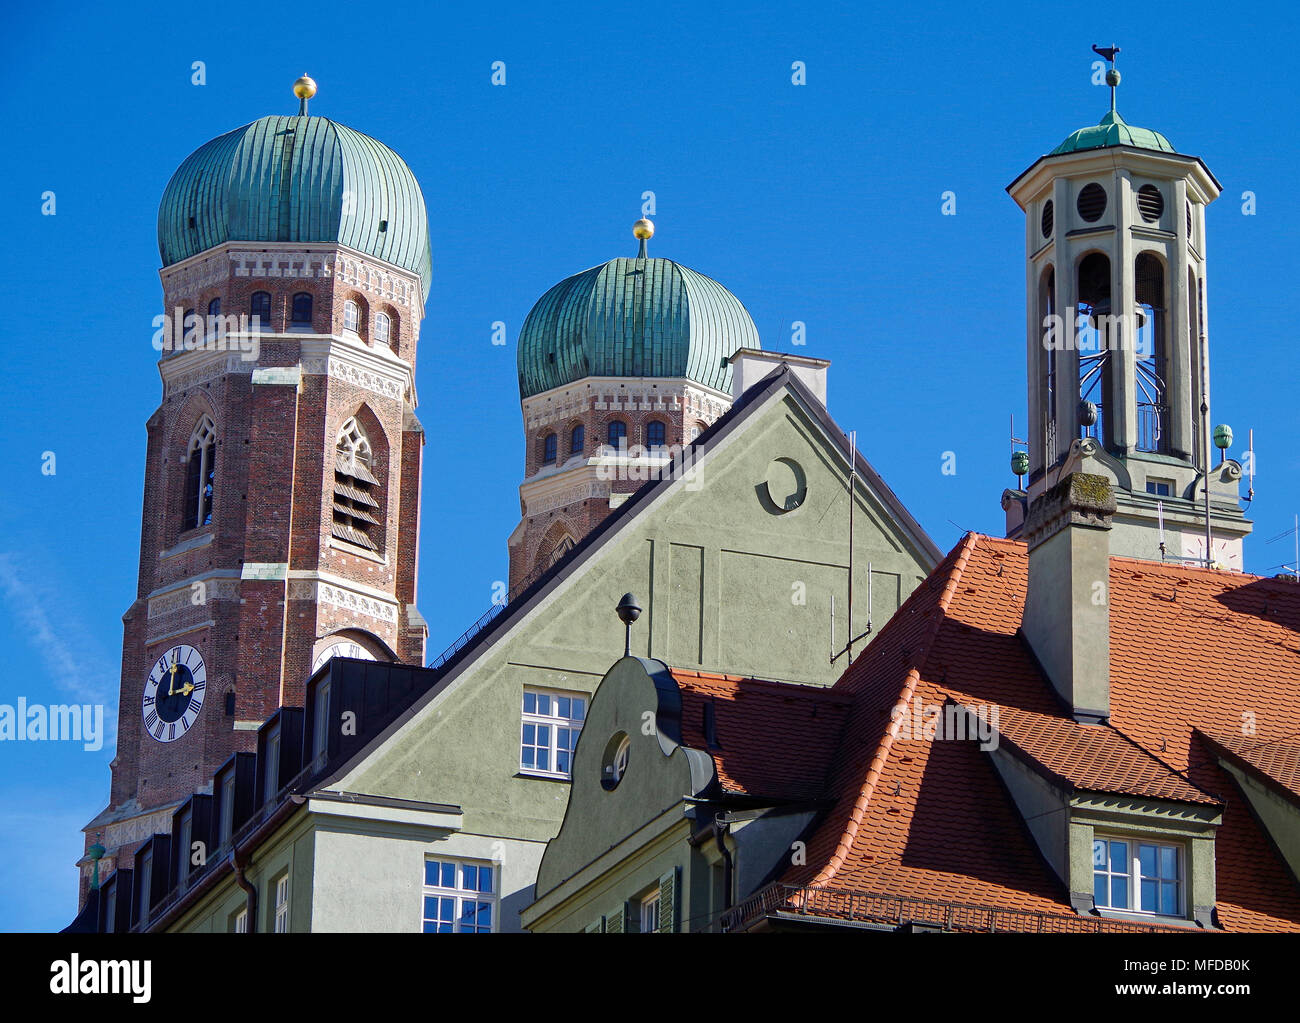 Munich, Bavaria, roofscape with twin domed towers of the Fraunkirche, a Belvedere, baroque gable, steep red- tiled roofs, &  attic windows - Stock Image